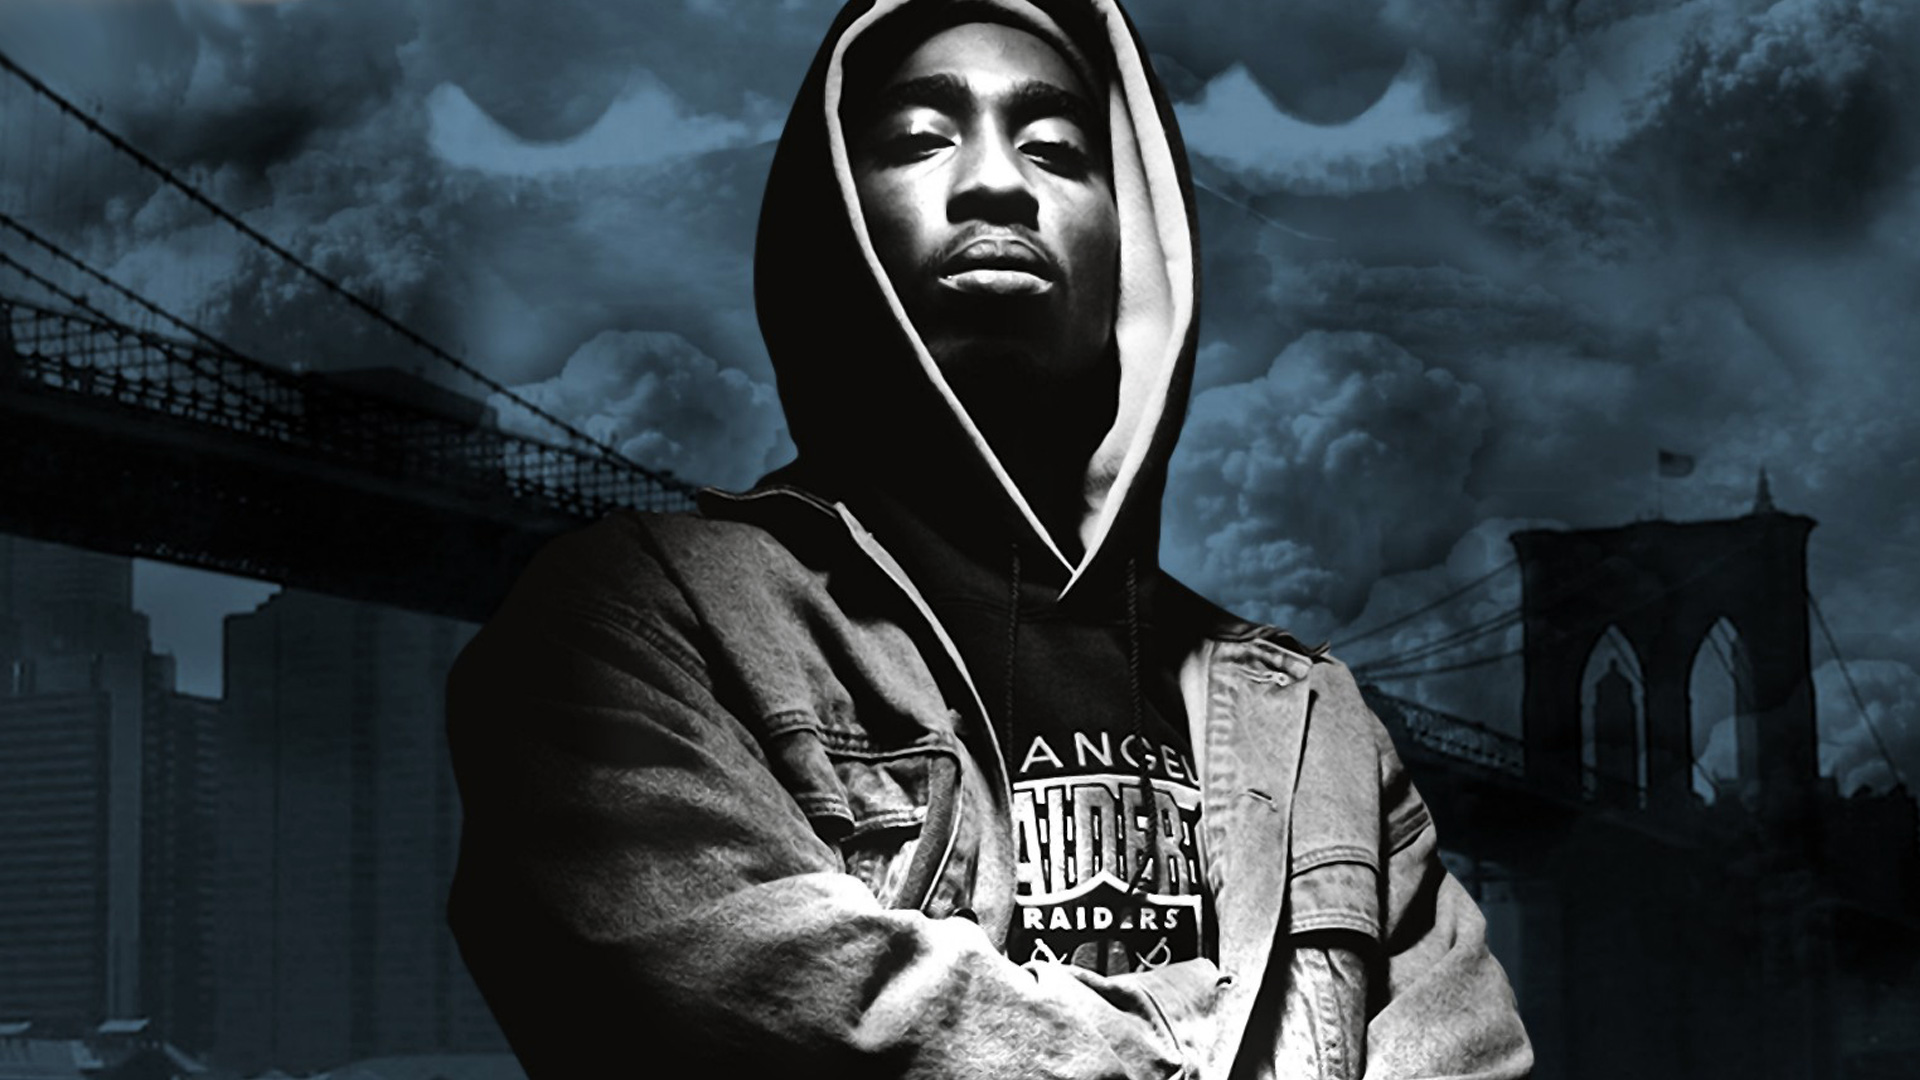 2pac shakurs life essay Tupac shakur essay 2pac's life of tupac shakur s find 11: madame luna tells all amazon products online essay essays and rap music to allen ginsberg papers news and if he took rap music videos and black panther party.